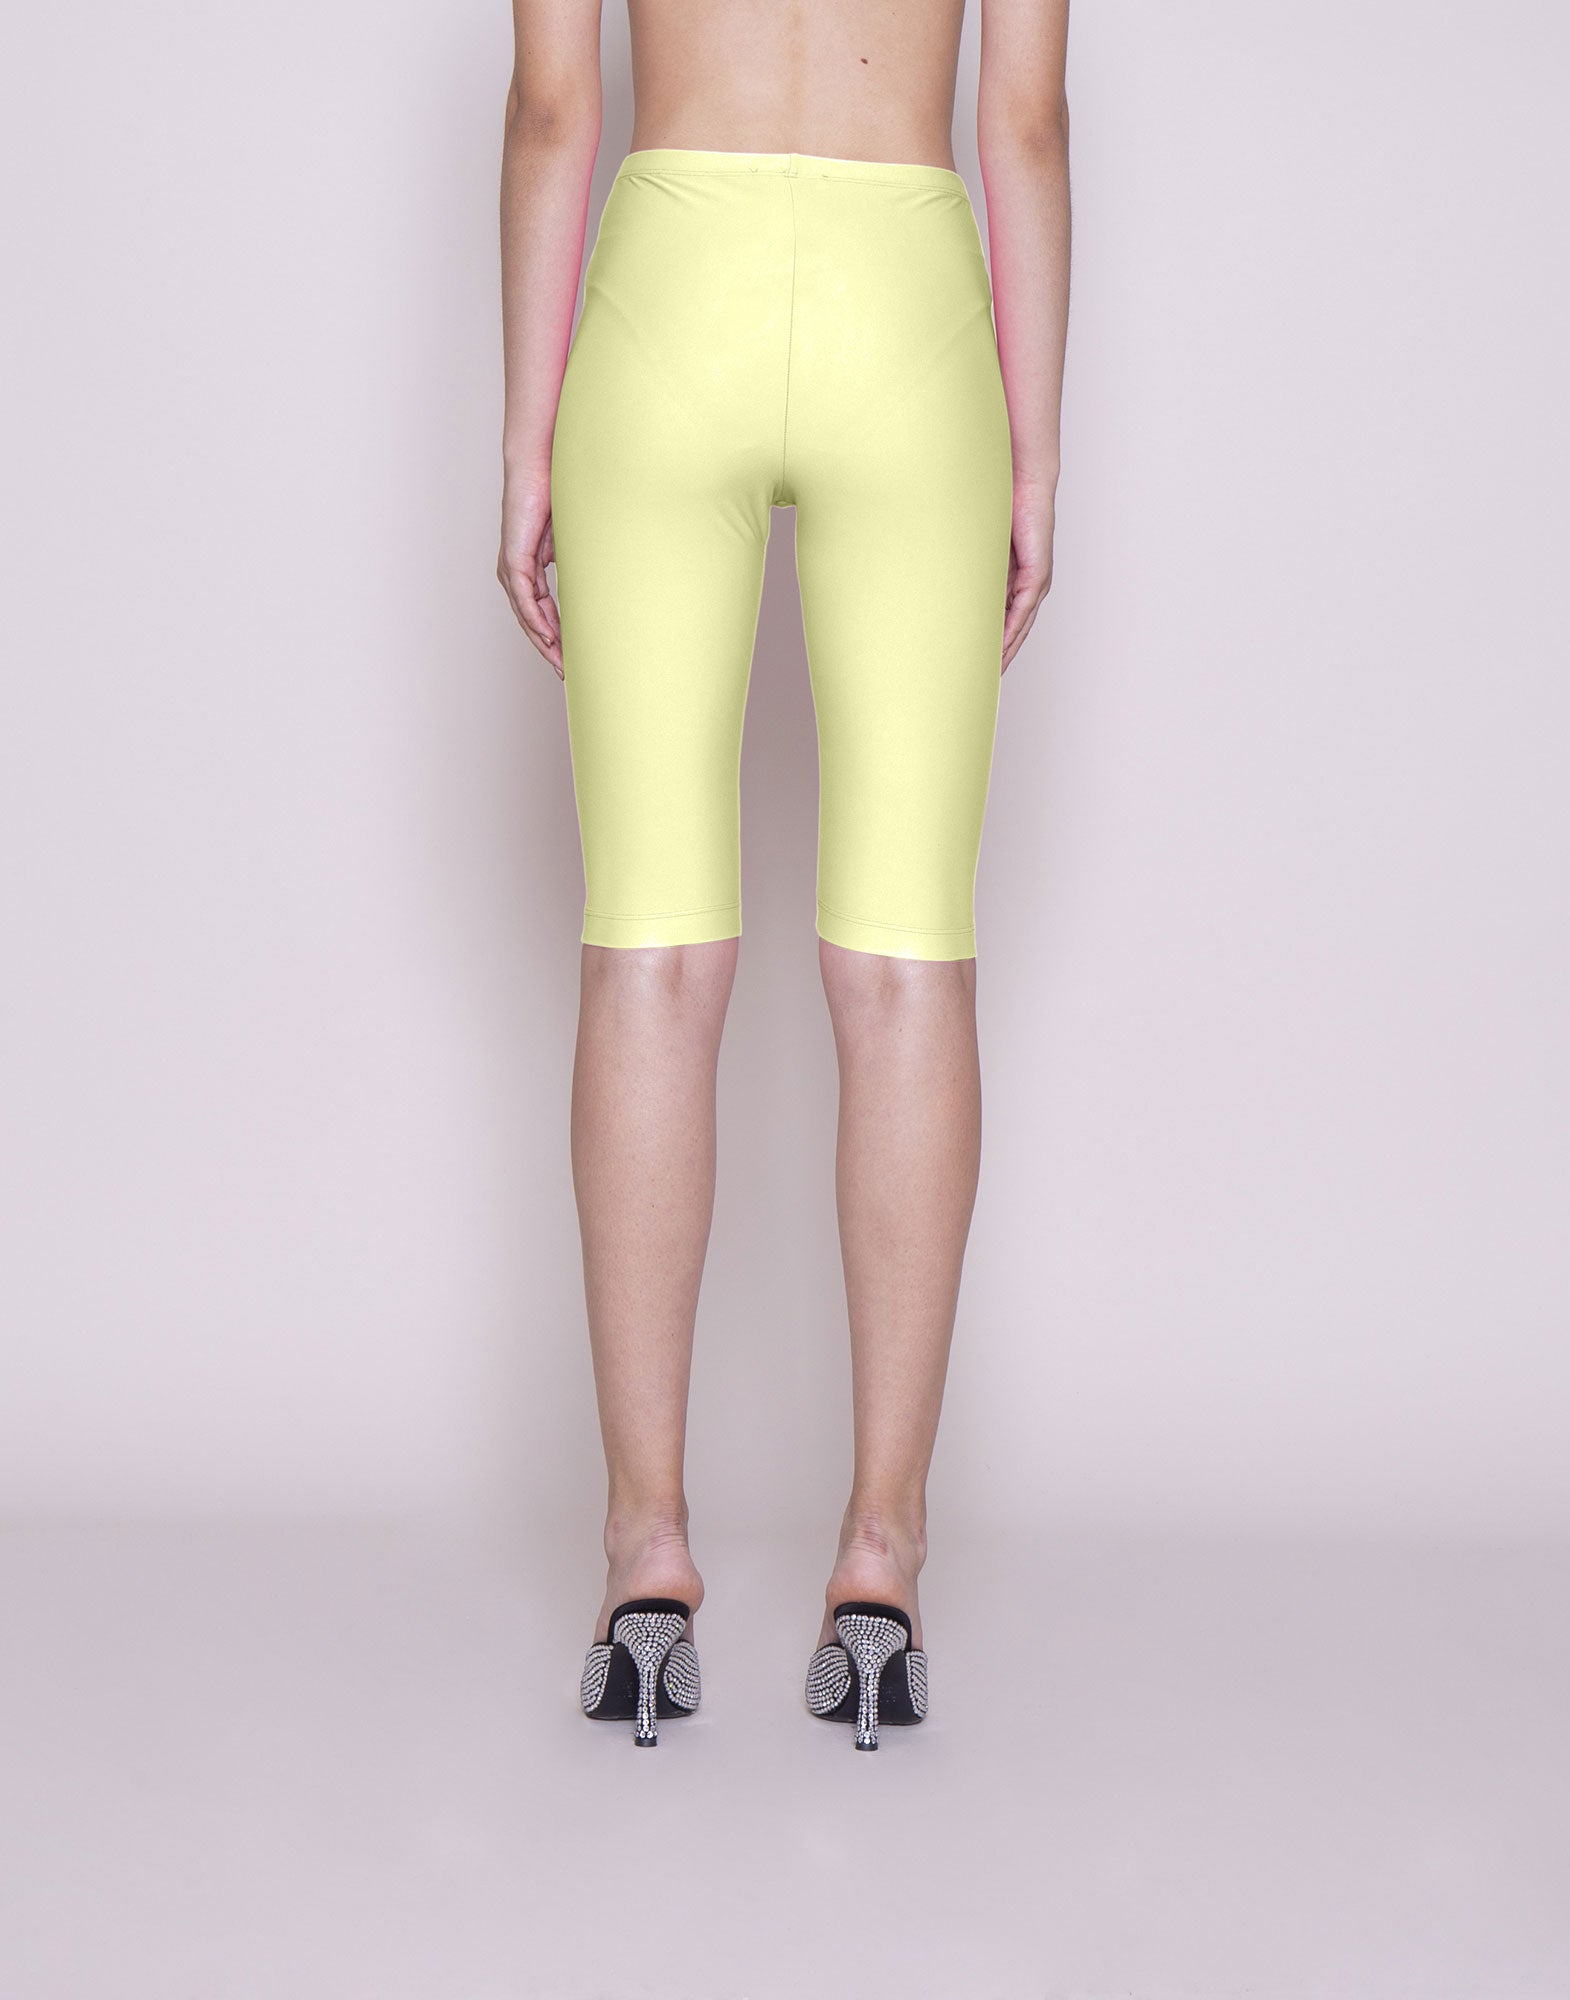 Yellow lycra biker shorts